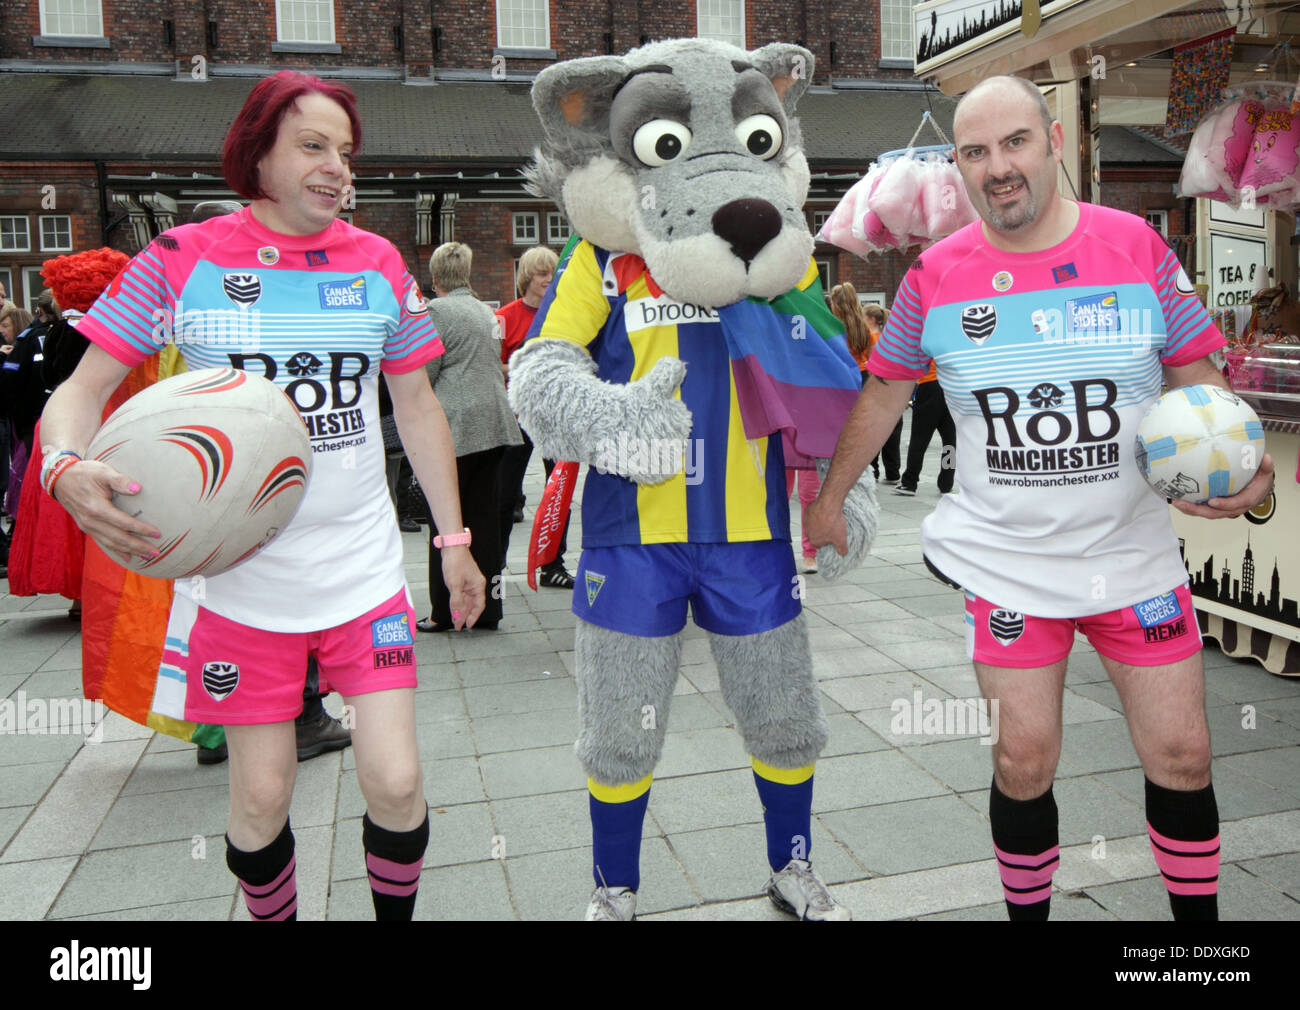 gay,homosexual,party,celebration,rugby,Wolf,Wolves,wolfie,rugger,ROB,Manchester,Canal,st,street,United Kingdom,Warrington Wolves,GoTonySmith,@HotpixUK,Buy Pictures of,Buy Images Of,Images of,Stock Images